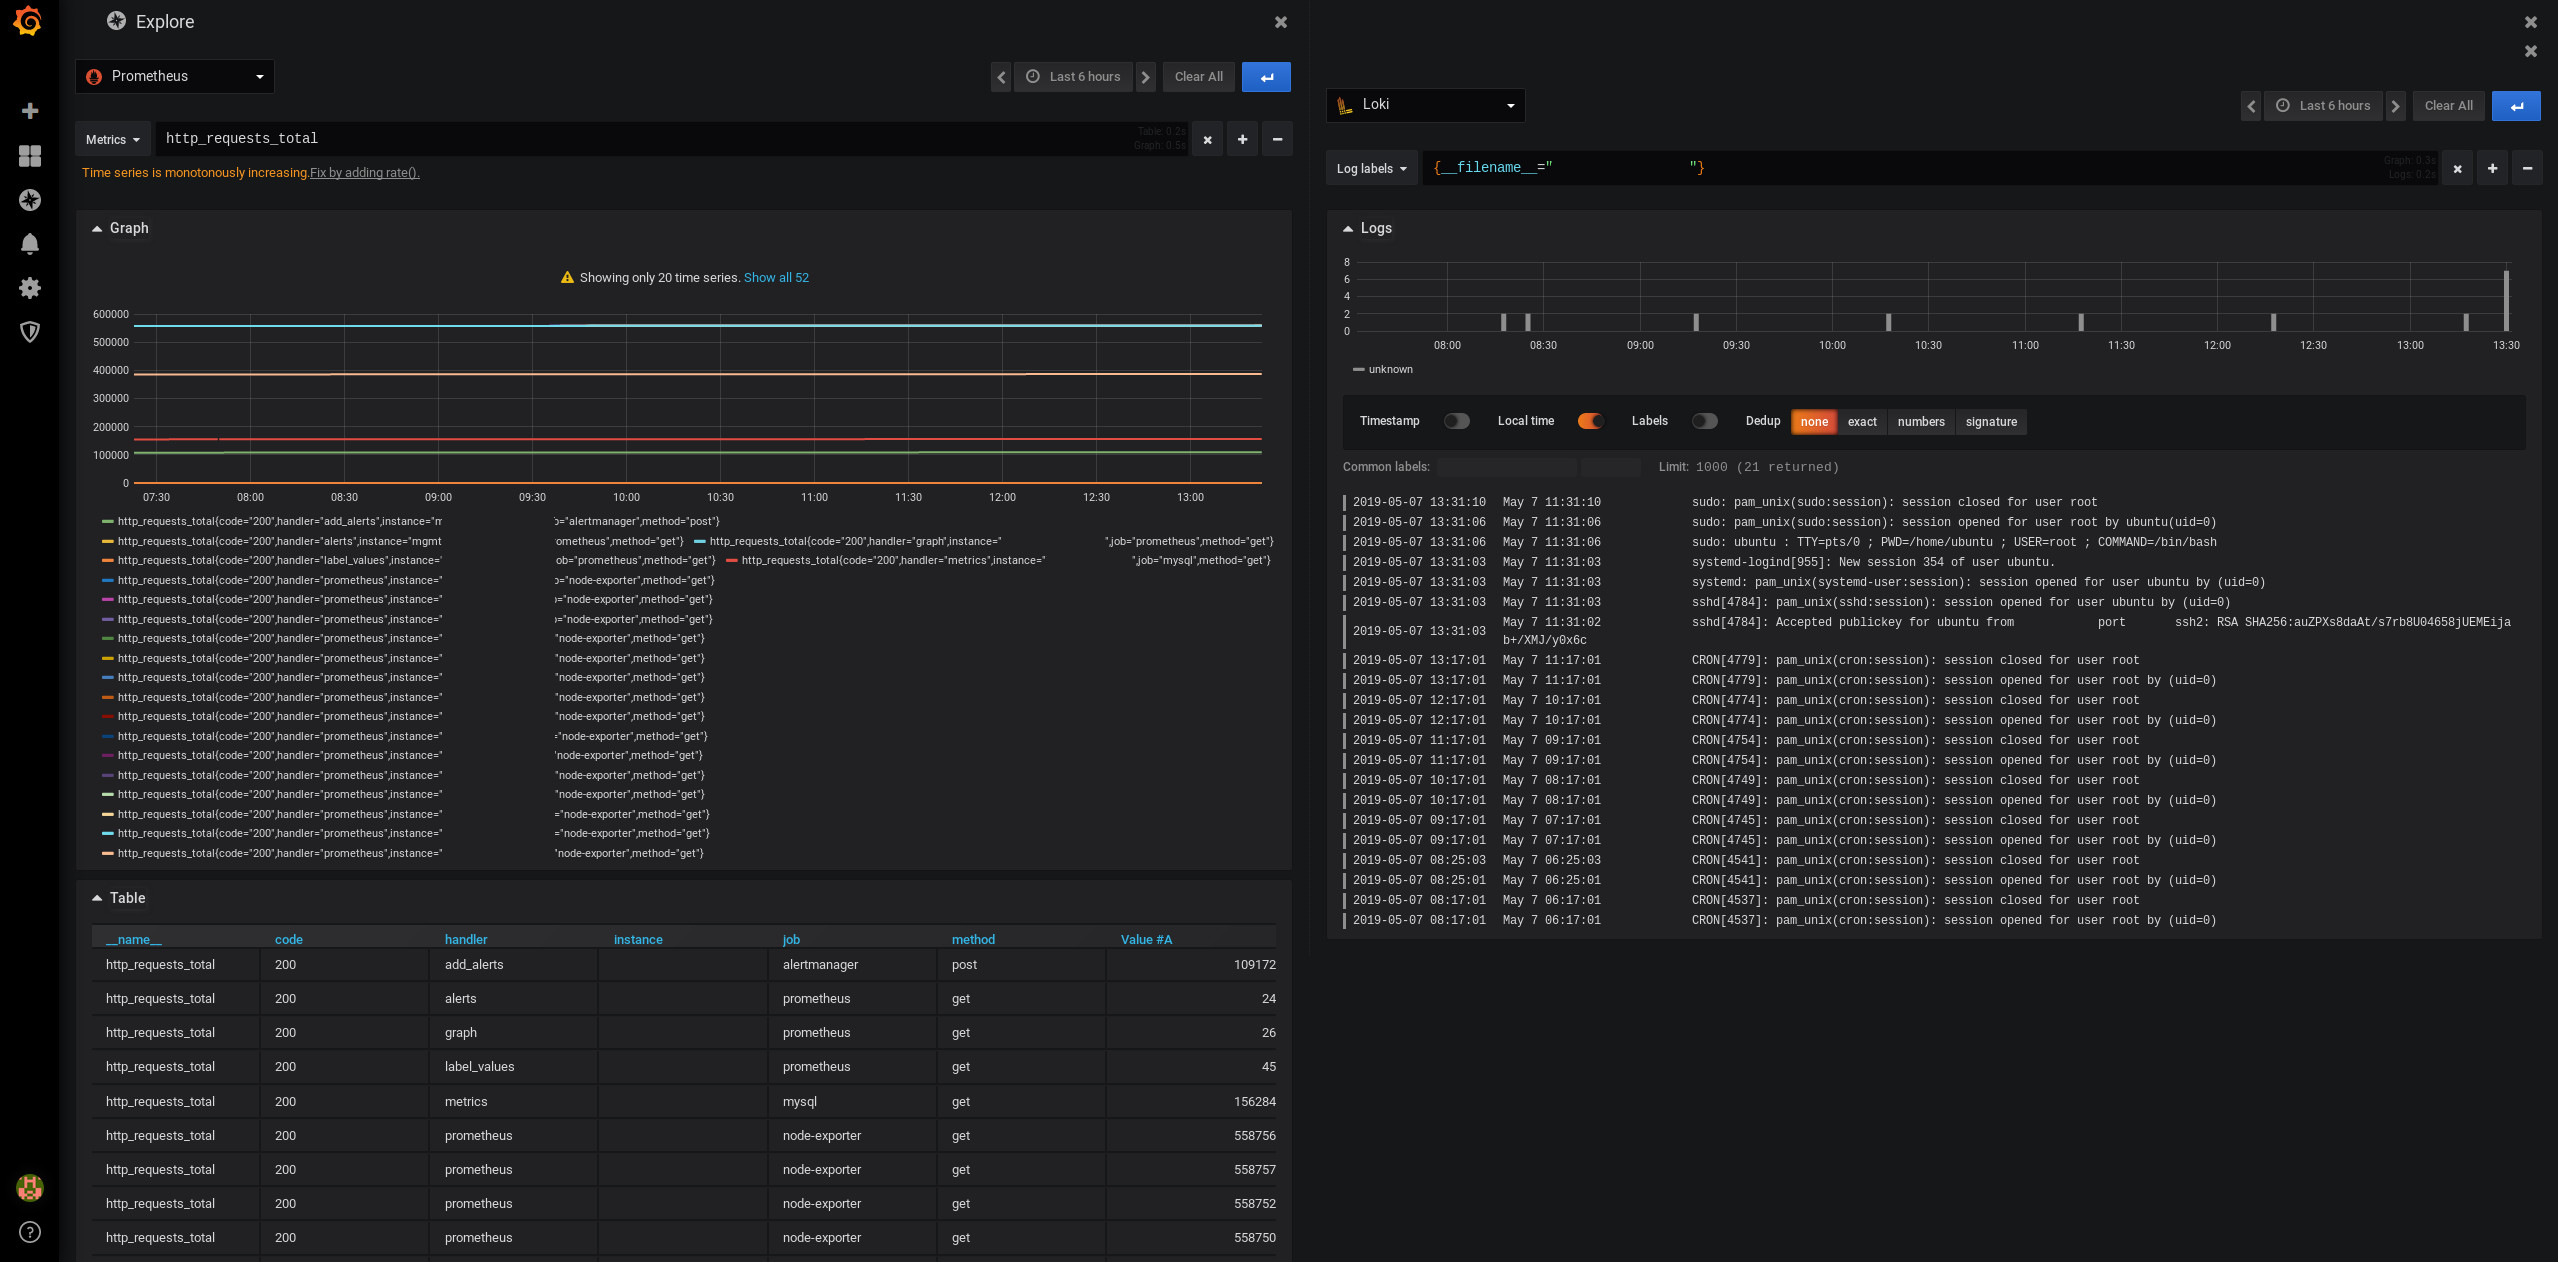 Grafana und Prometheus - ein Workshop-Thema?!